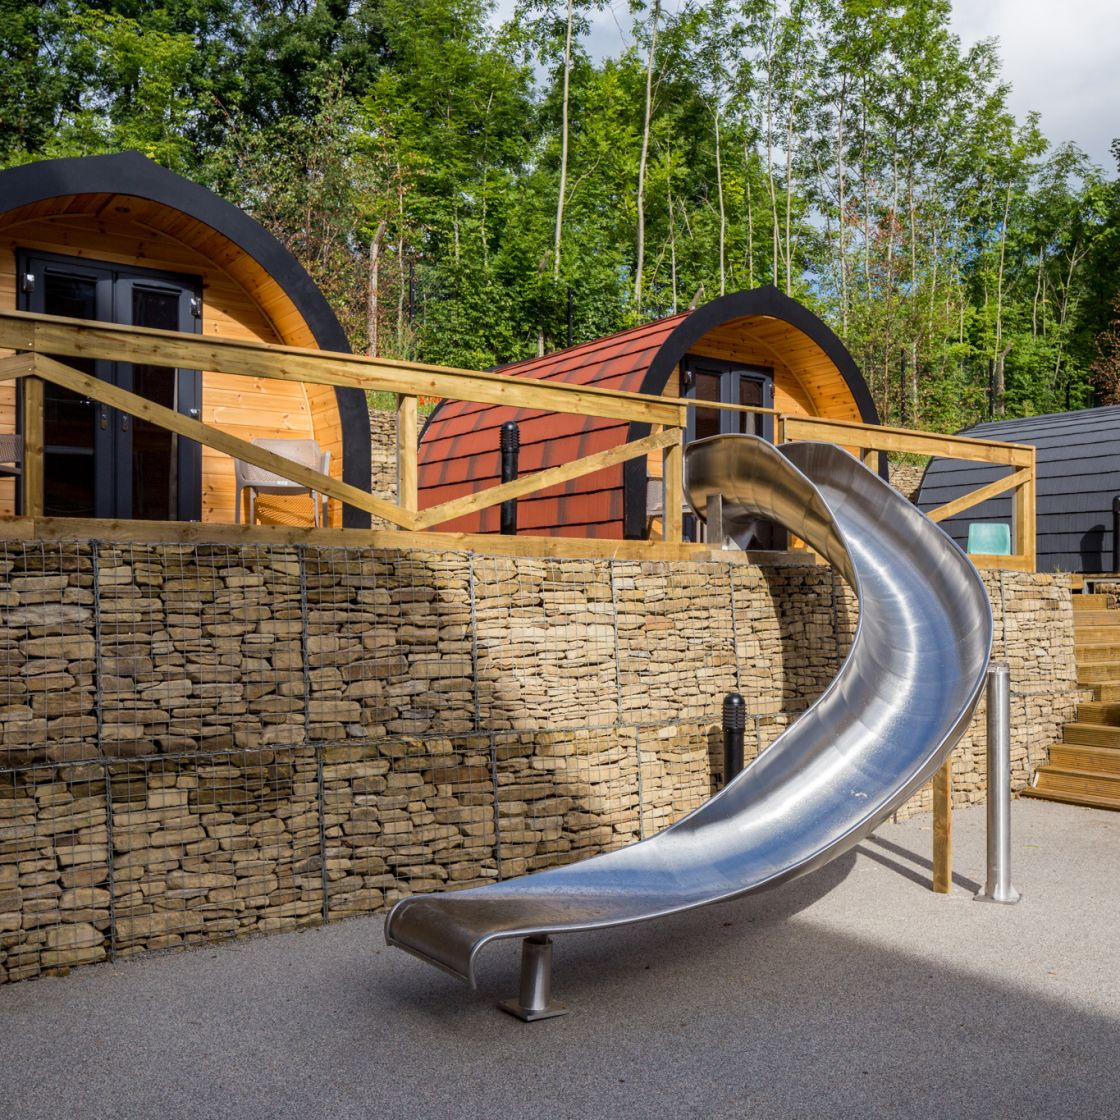 Outdoor Glamping Pods and Slide at IconInc, The Glassworks. Student Accommodation in Leeds